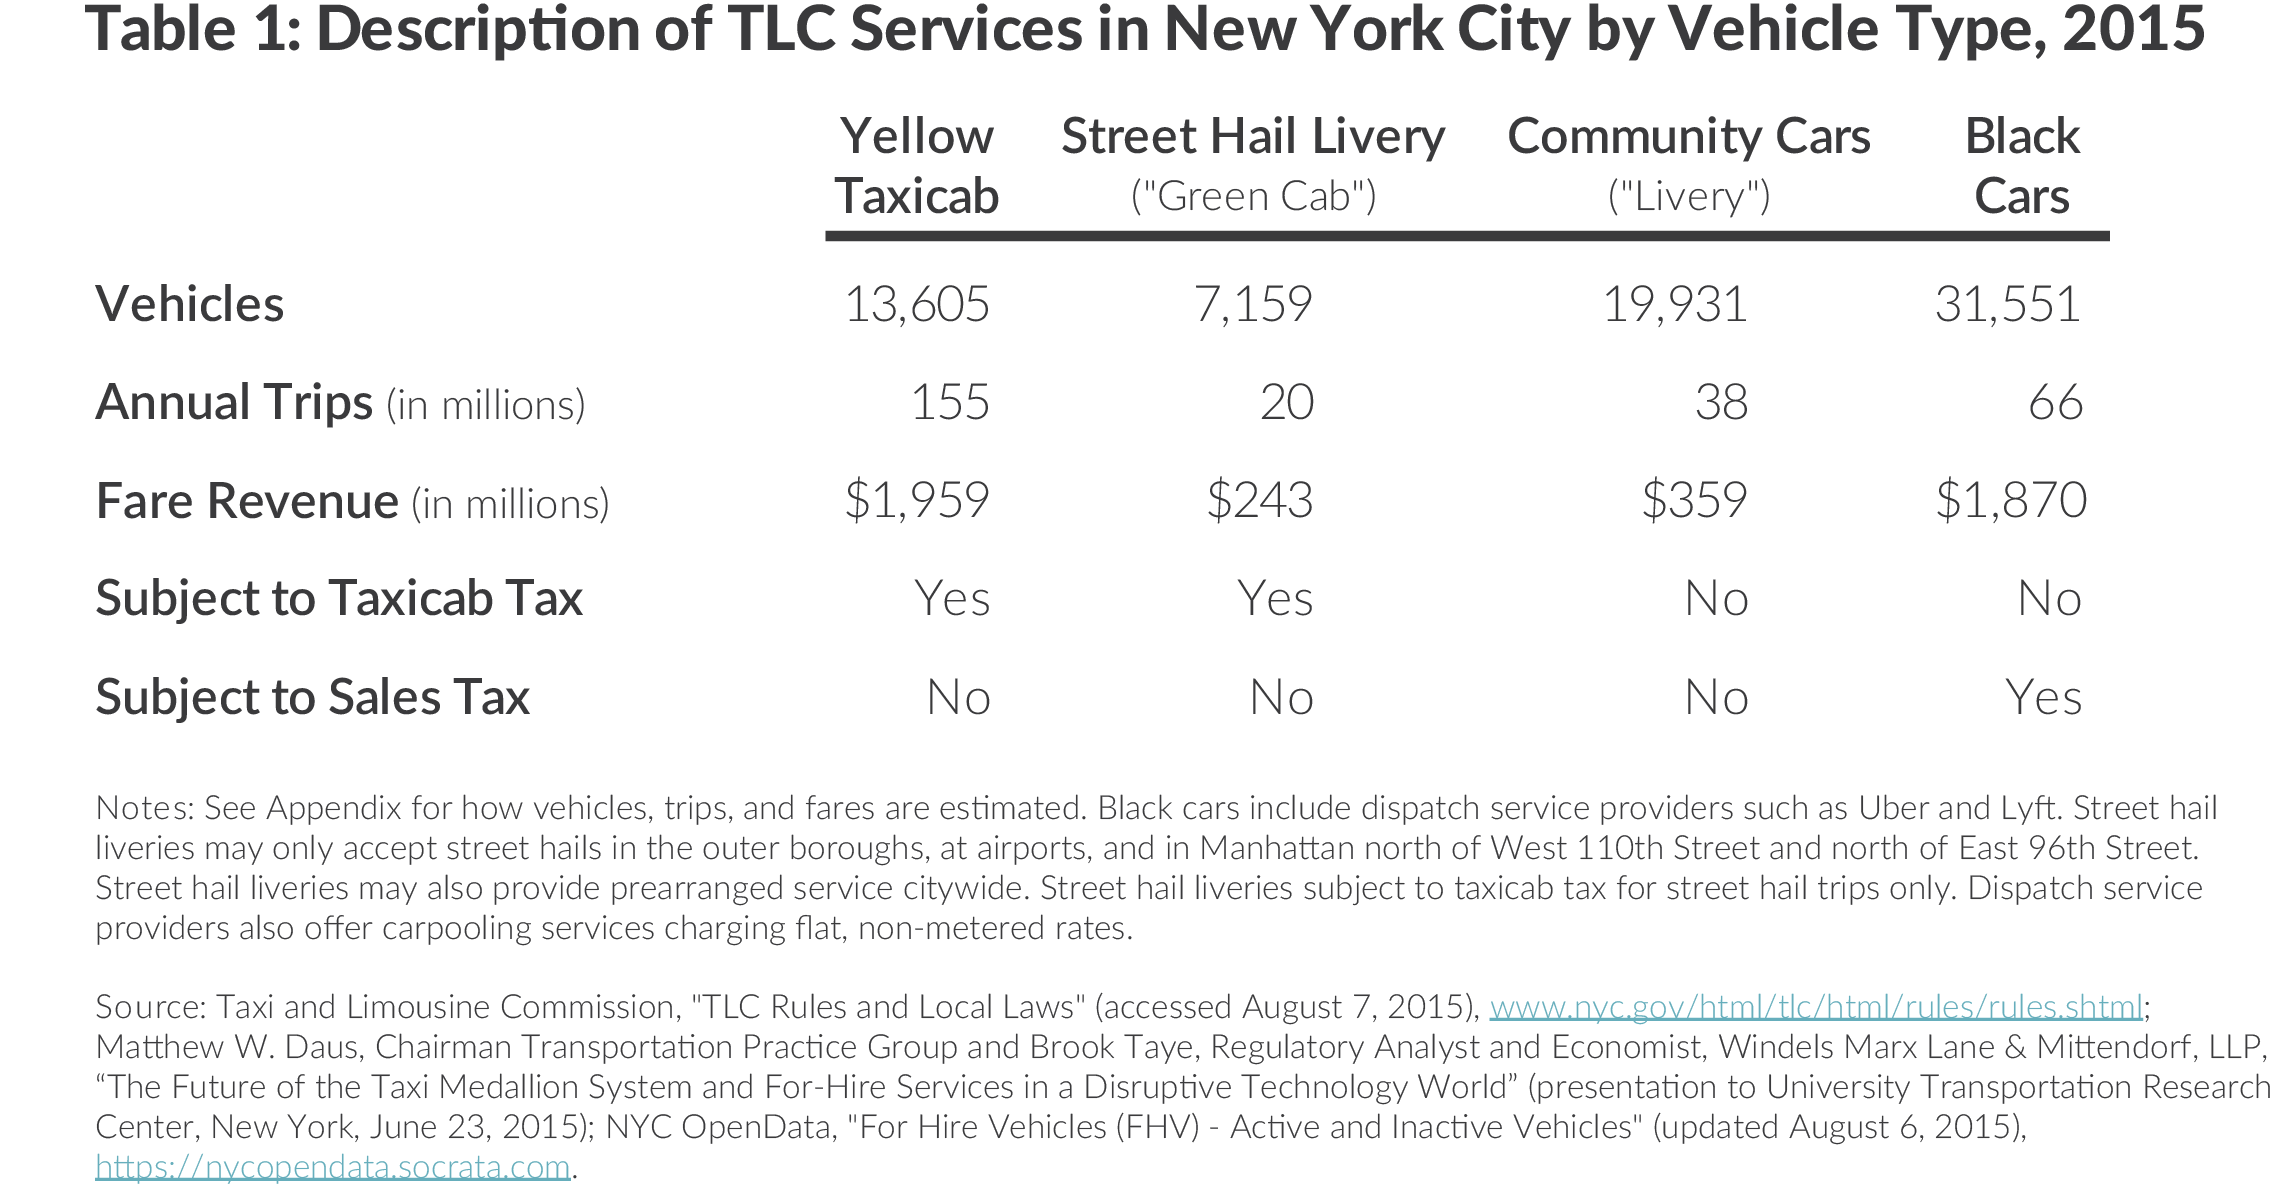 Table describing taxicab and limousine commission car services in New York City by vehicle type, vehichles, annual trips, fare revenue, yellow cab, street hail livery, green cab, community cars, livery, black cars